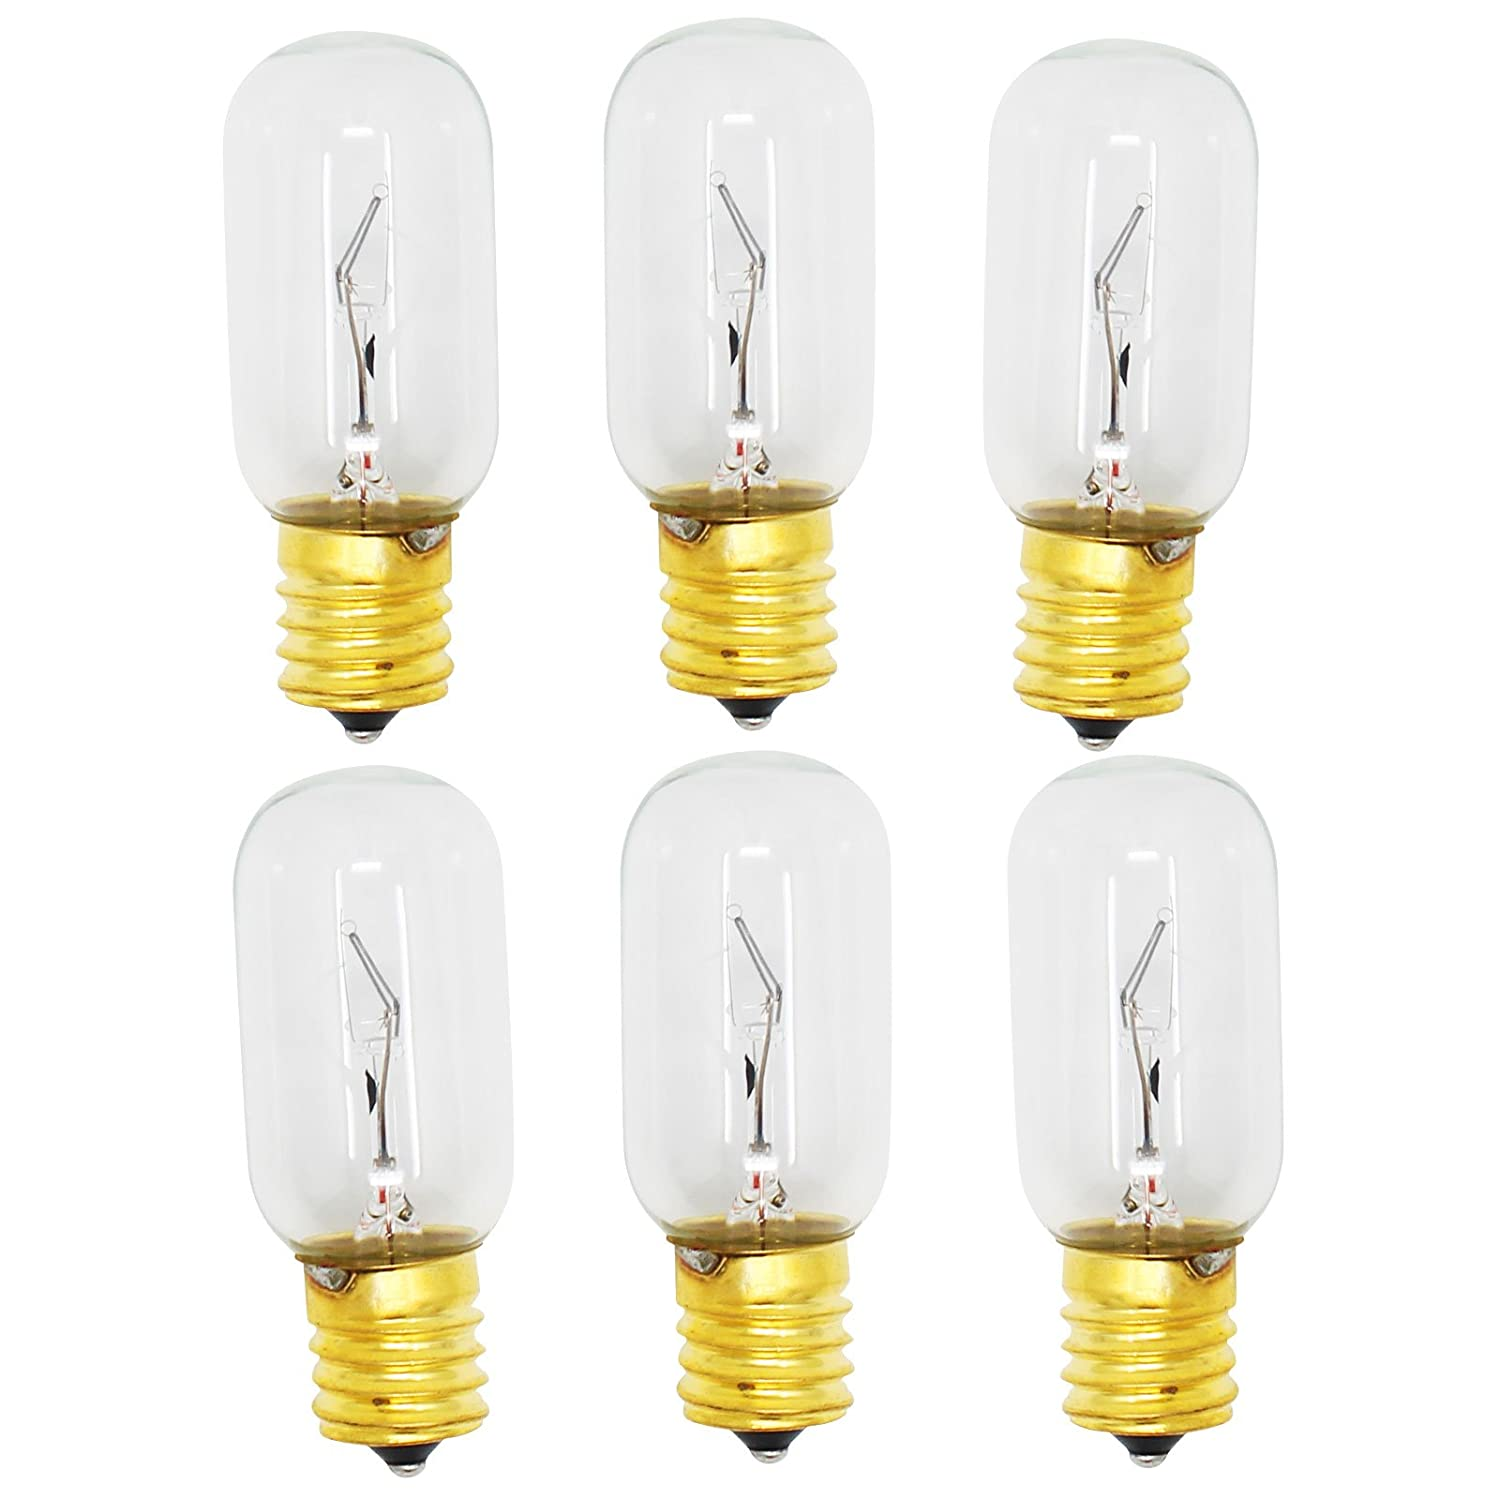 6-Pack Replacement Light Bulb for Kenmore/Sears 72180413500 Microwave - Compatible Kenmore/Sears 6912W1Z004B Light Bulb